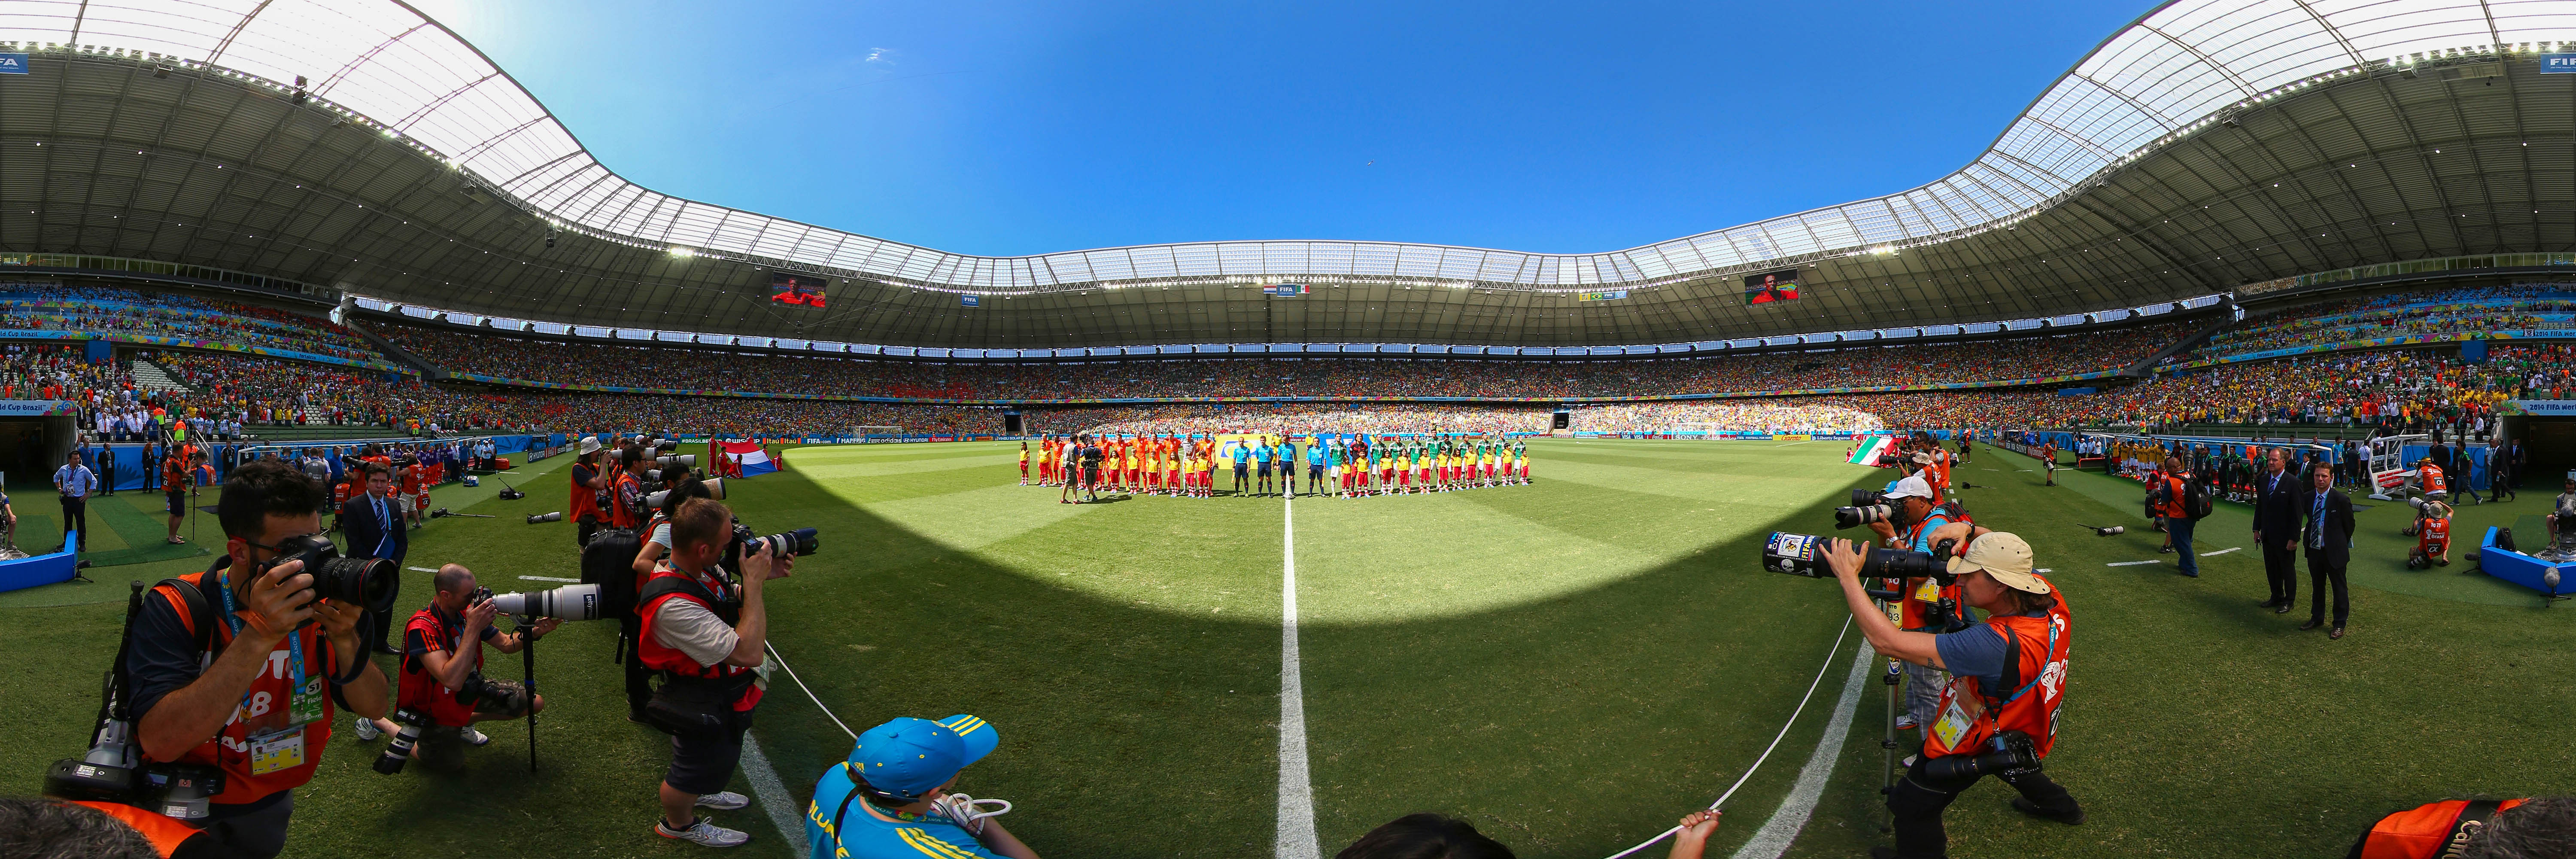 FORTALEZA, BRAZIL - JUNE 29:  EDITOR'S NOTE: Image was created as an Equirectangular Panorama. Import image into a panoramic player to create an interactive 360 degree view. Exclusive Content, outside of all subscription agreements - Premium Pricing applies) The teams line up before the 2014 FIFA World Cup Brazil Round of 16 match between Netherlands and Mexico at Castelao on June 29, 2014 in Fortaleza, Brazil.  (Photo by Robert Cianflone/360/Getty Images)